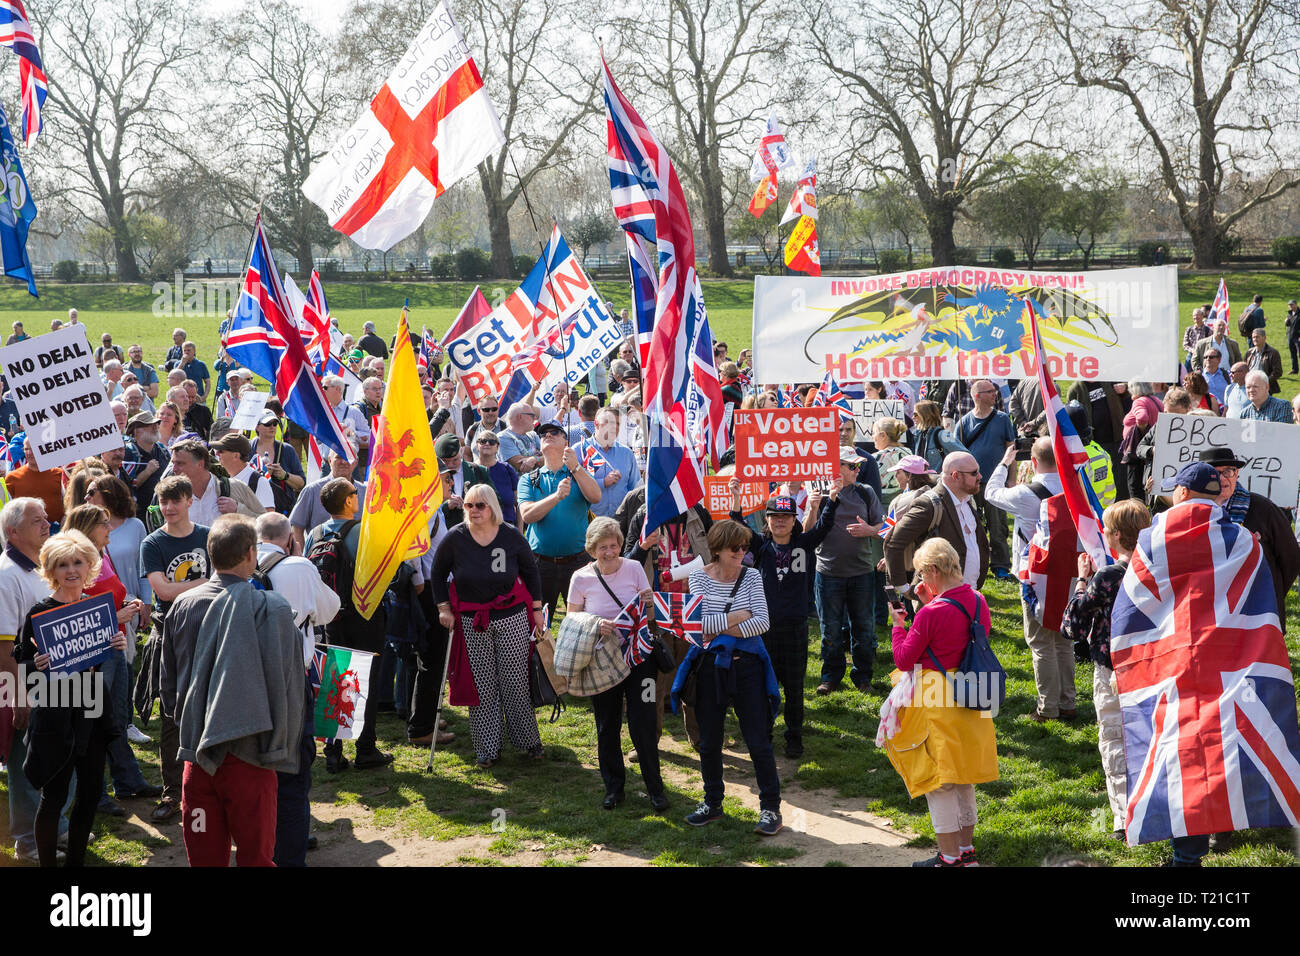 London, UK. 29th Mar, 2019. Pro-Brexit activists from Leave Means Leave march from Fulham to a rally in Parliament Square in Westminster on the final leg of the March to Leave on the day on which the UK was originally to have left the European Union. The March to Leave was organised by Leave Means Leave, with assistance from Nigel Farage, as a peaceful protest 'to demonstrate the depth and breadth of popular discontent with the way Brexit has been handled' by the Government. Credit: Mark Kerrison/Alamy Live News - Stock Image